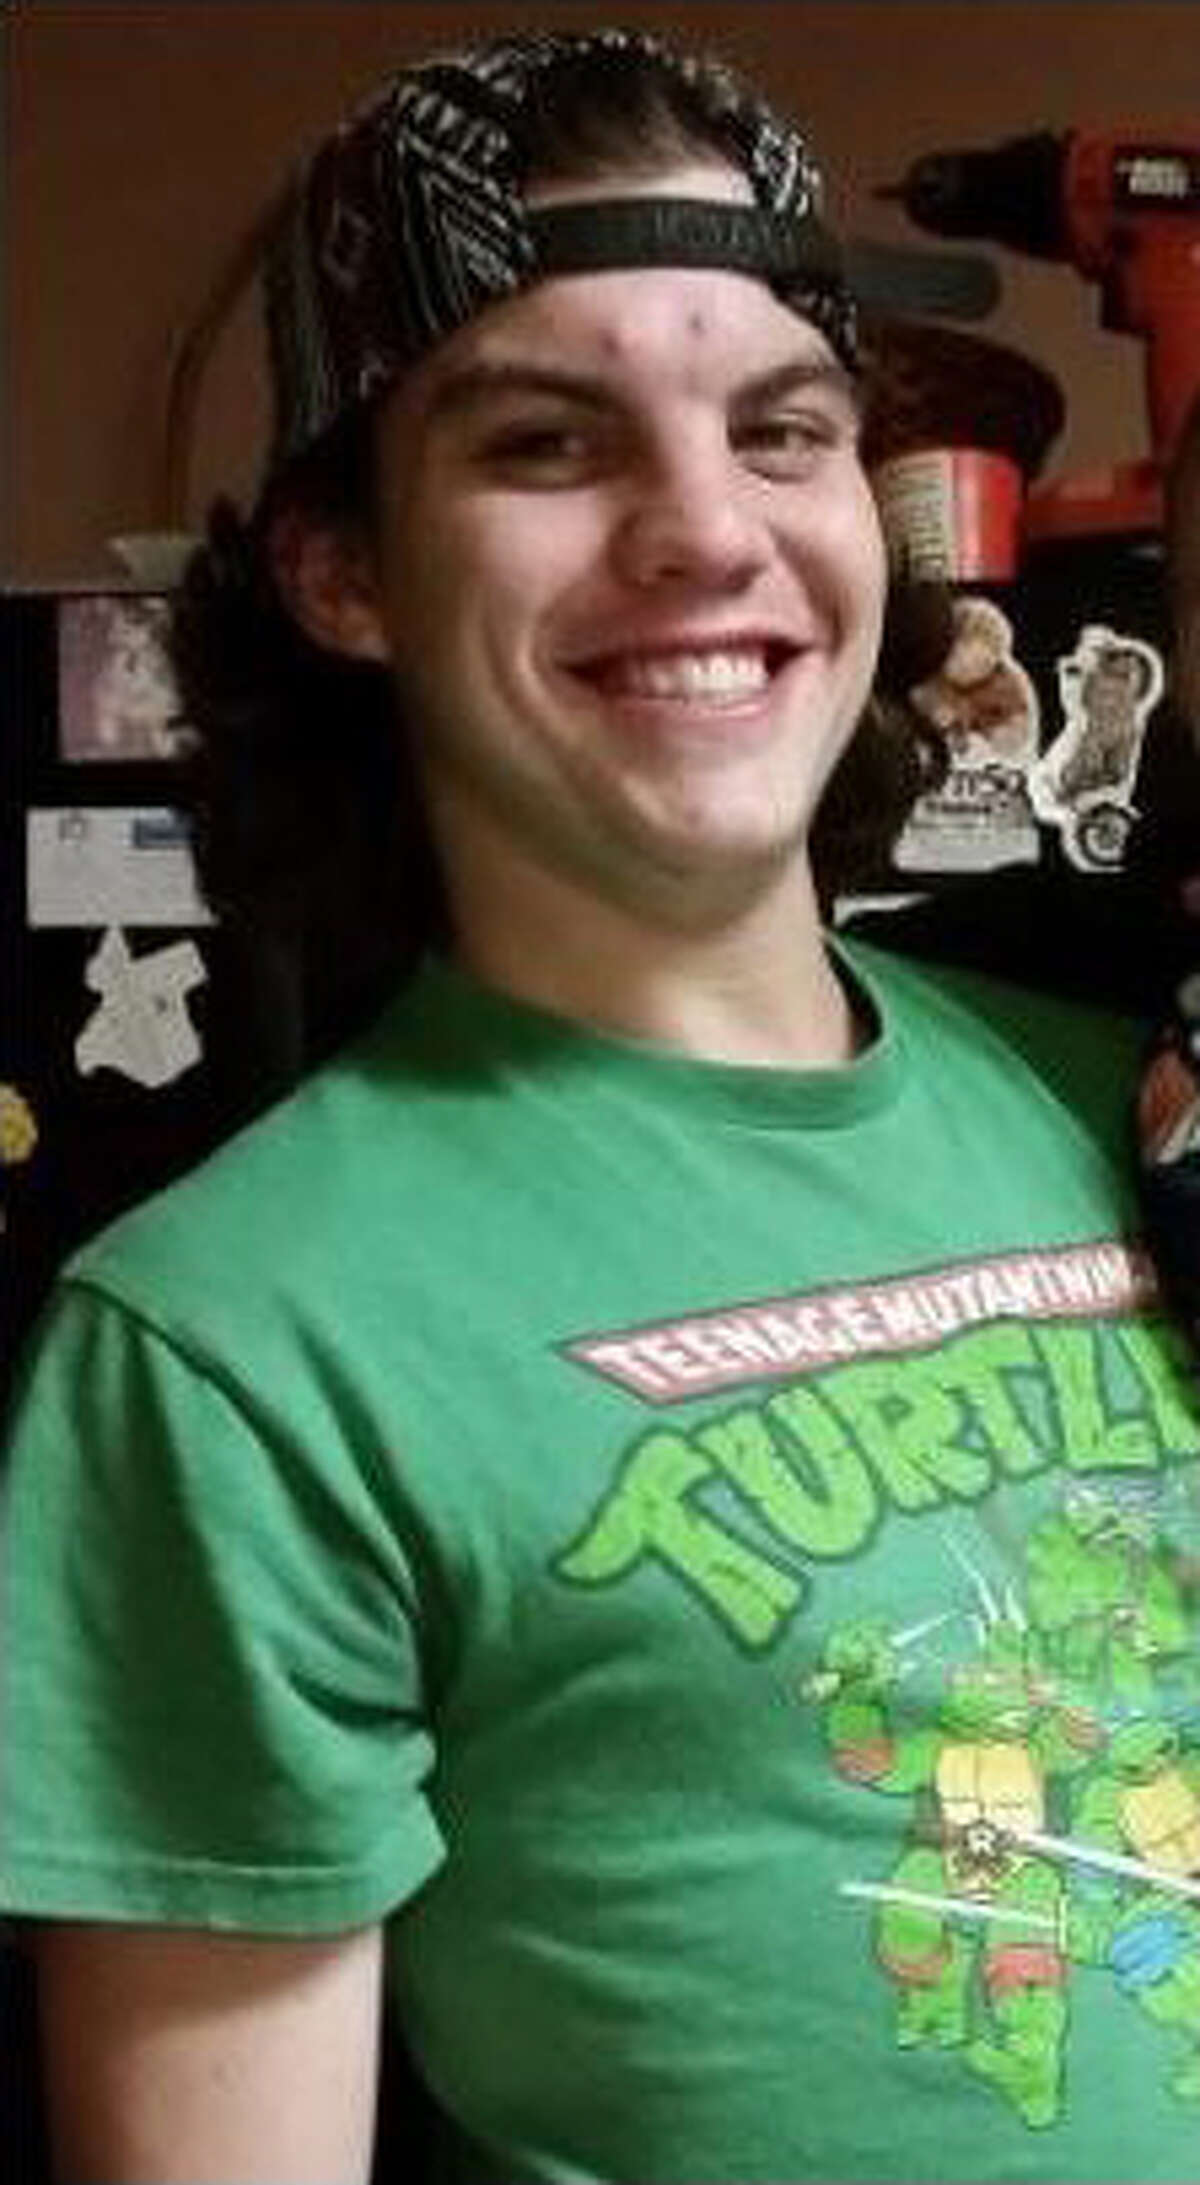 Drake L. Kramer, 21, of San Antonio, was reported missing from Grand Canyon National Park on Monday, Feb. 2, 2015.